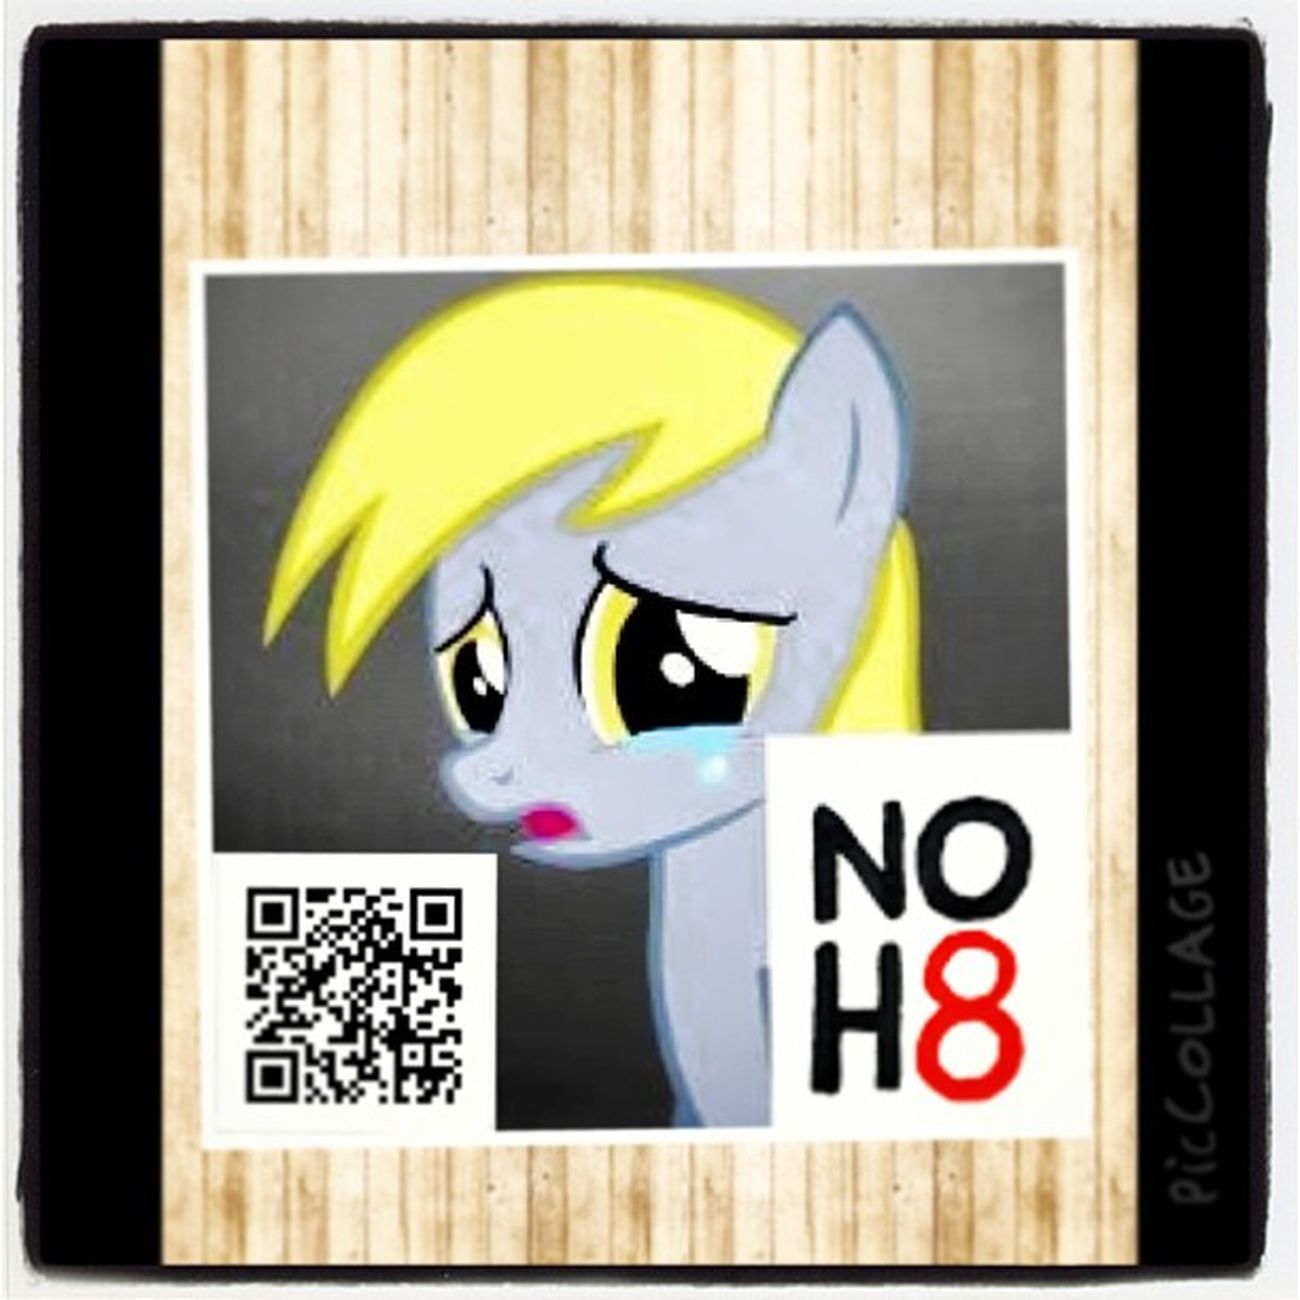 SaveDerpy NOH8 I Spread the Love Share the Peace piccollage